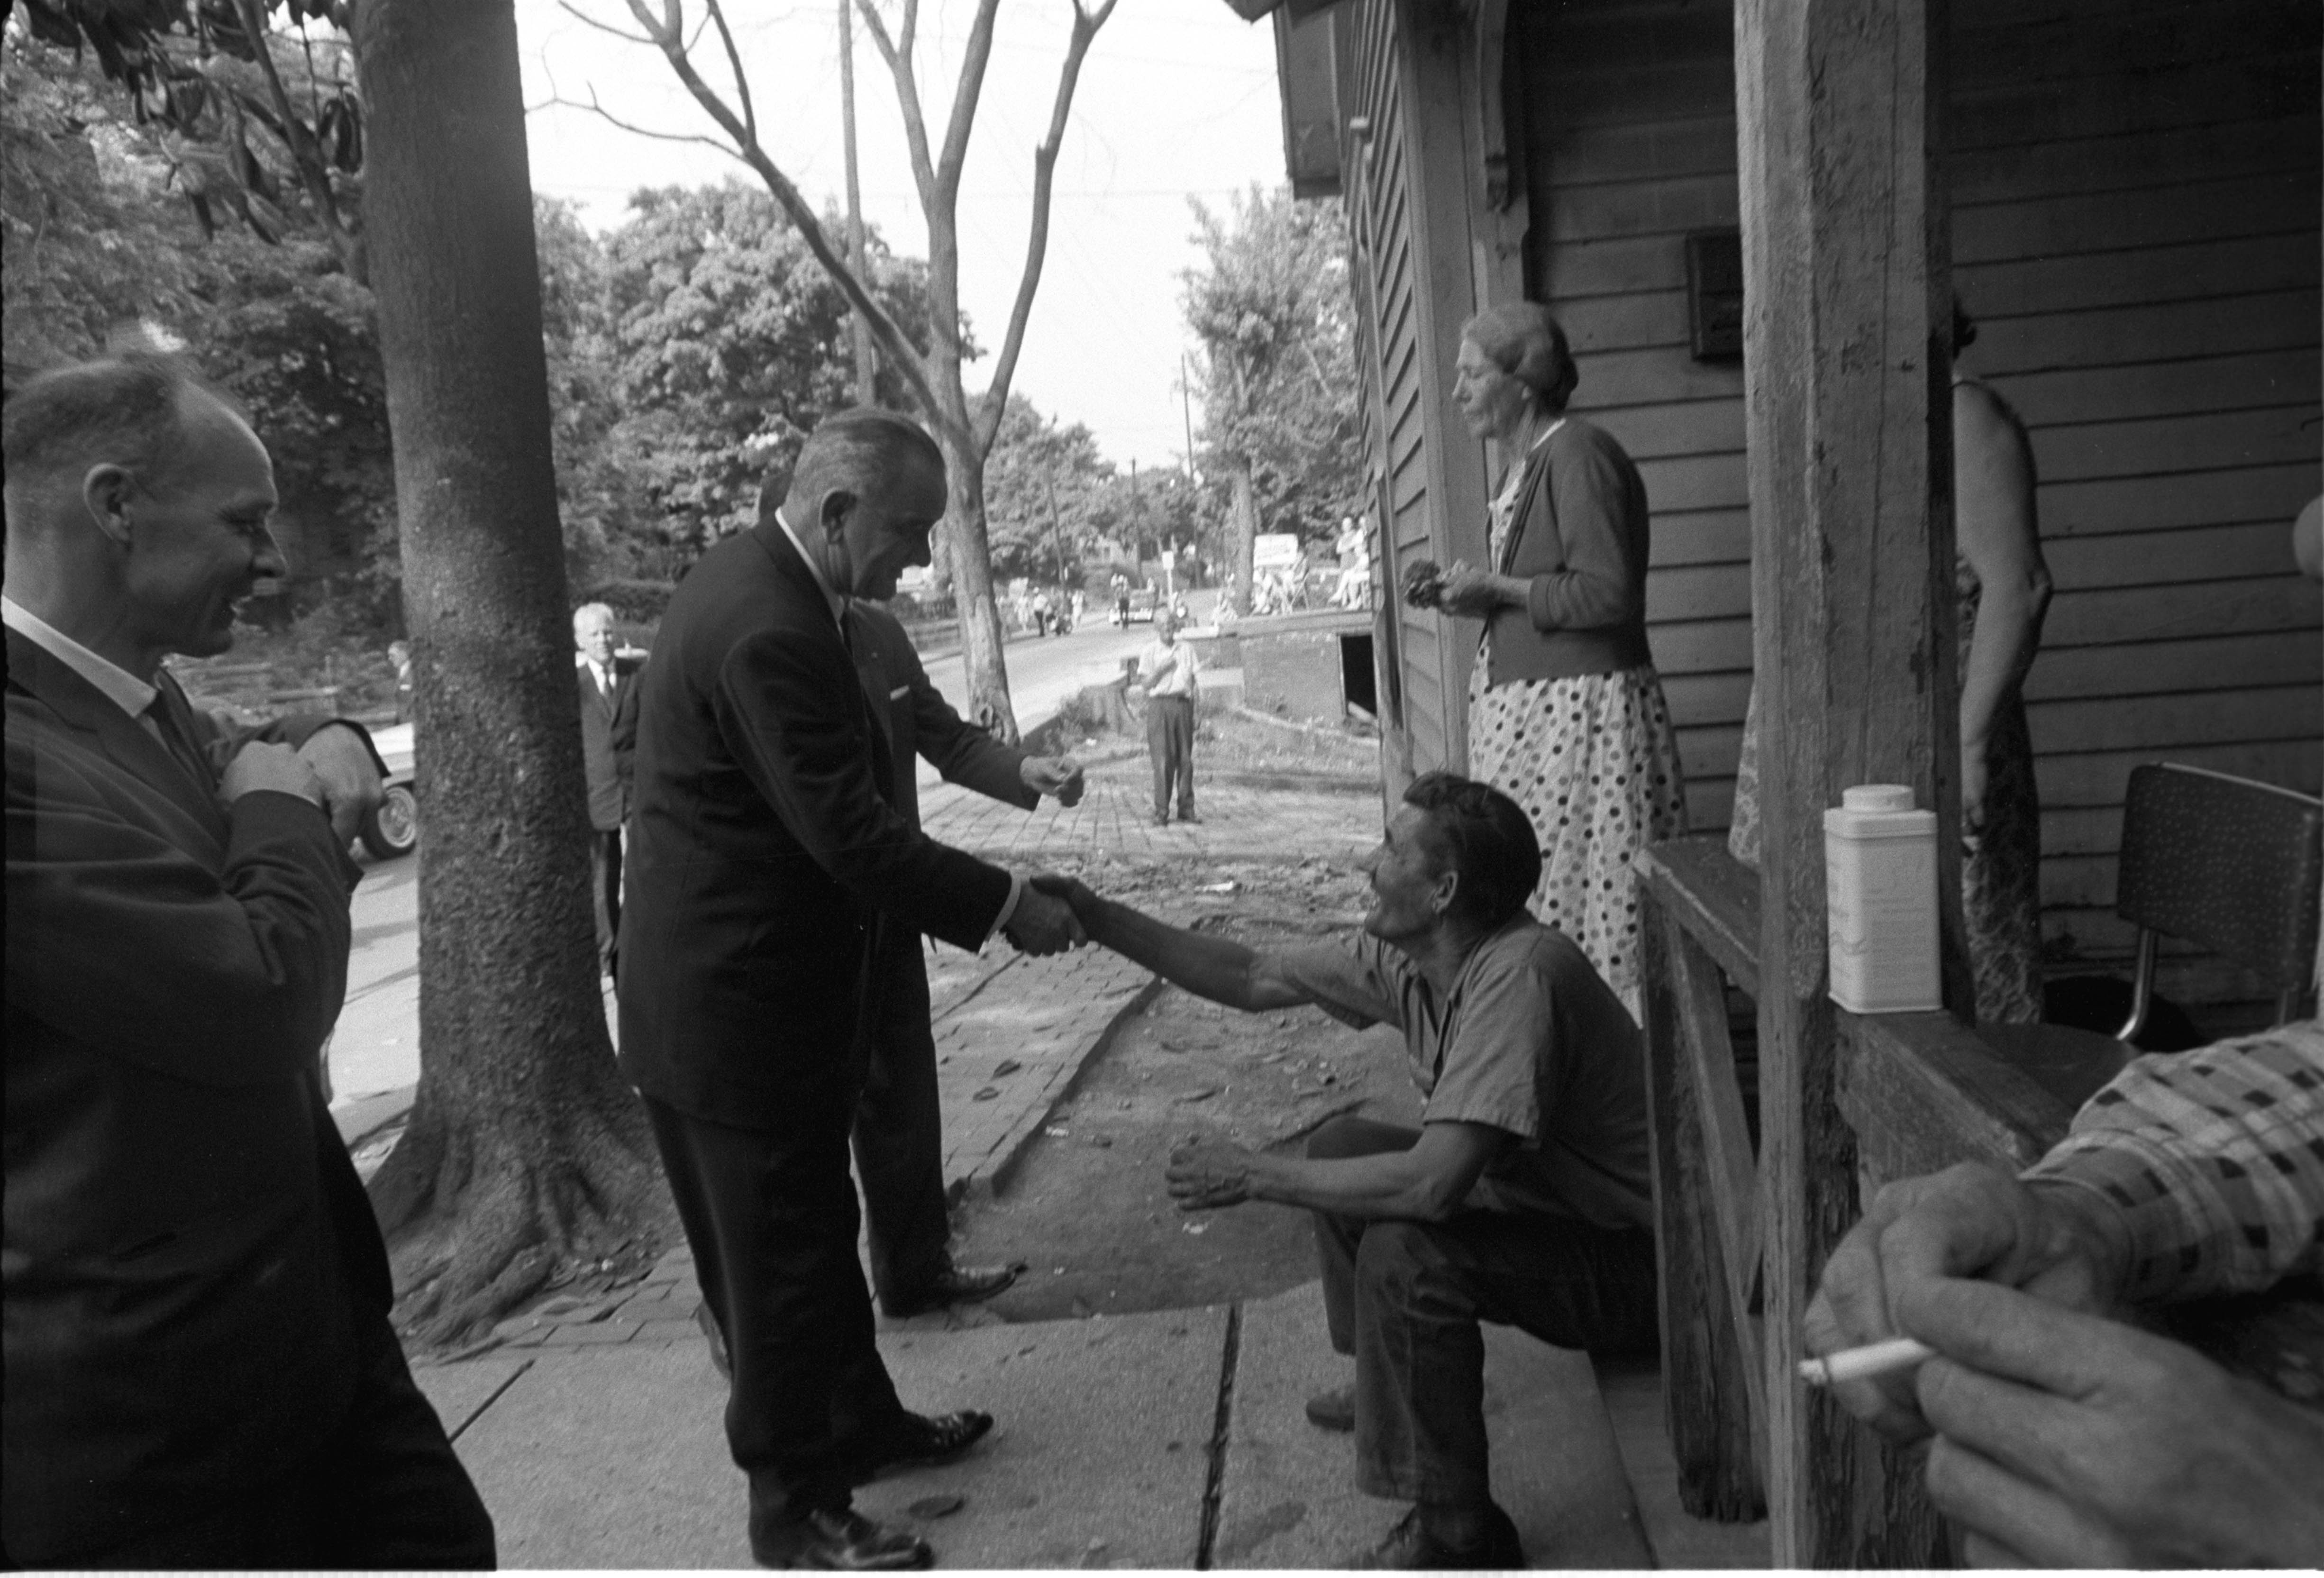 the war on poverty created by lyndon johnson On march 16, 1964, president lyndon johnson delivered a special message to  congress  11, 1964, shriver made four points about the war on poverty: 1.